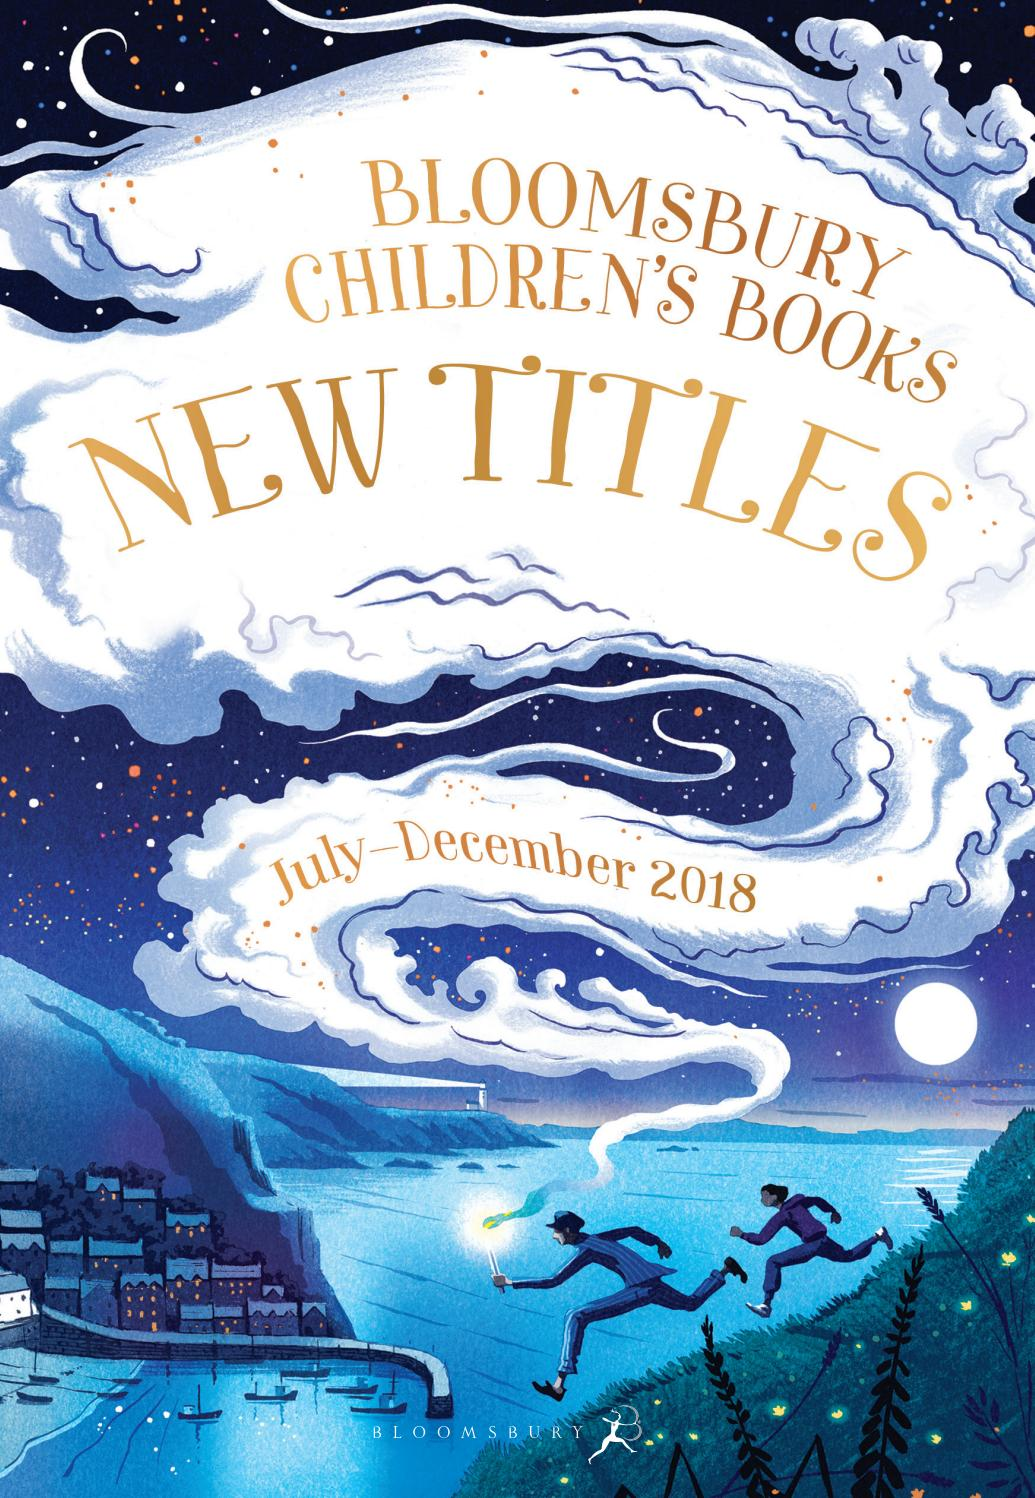 Childrens catalogue july december 2018 by bloomsbury publishing issuu fandeluxe Gallery